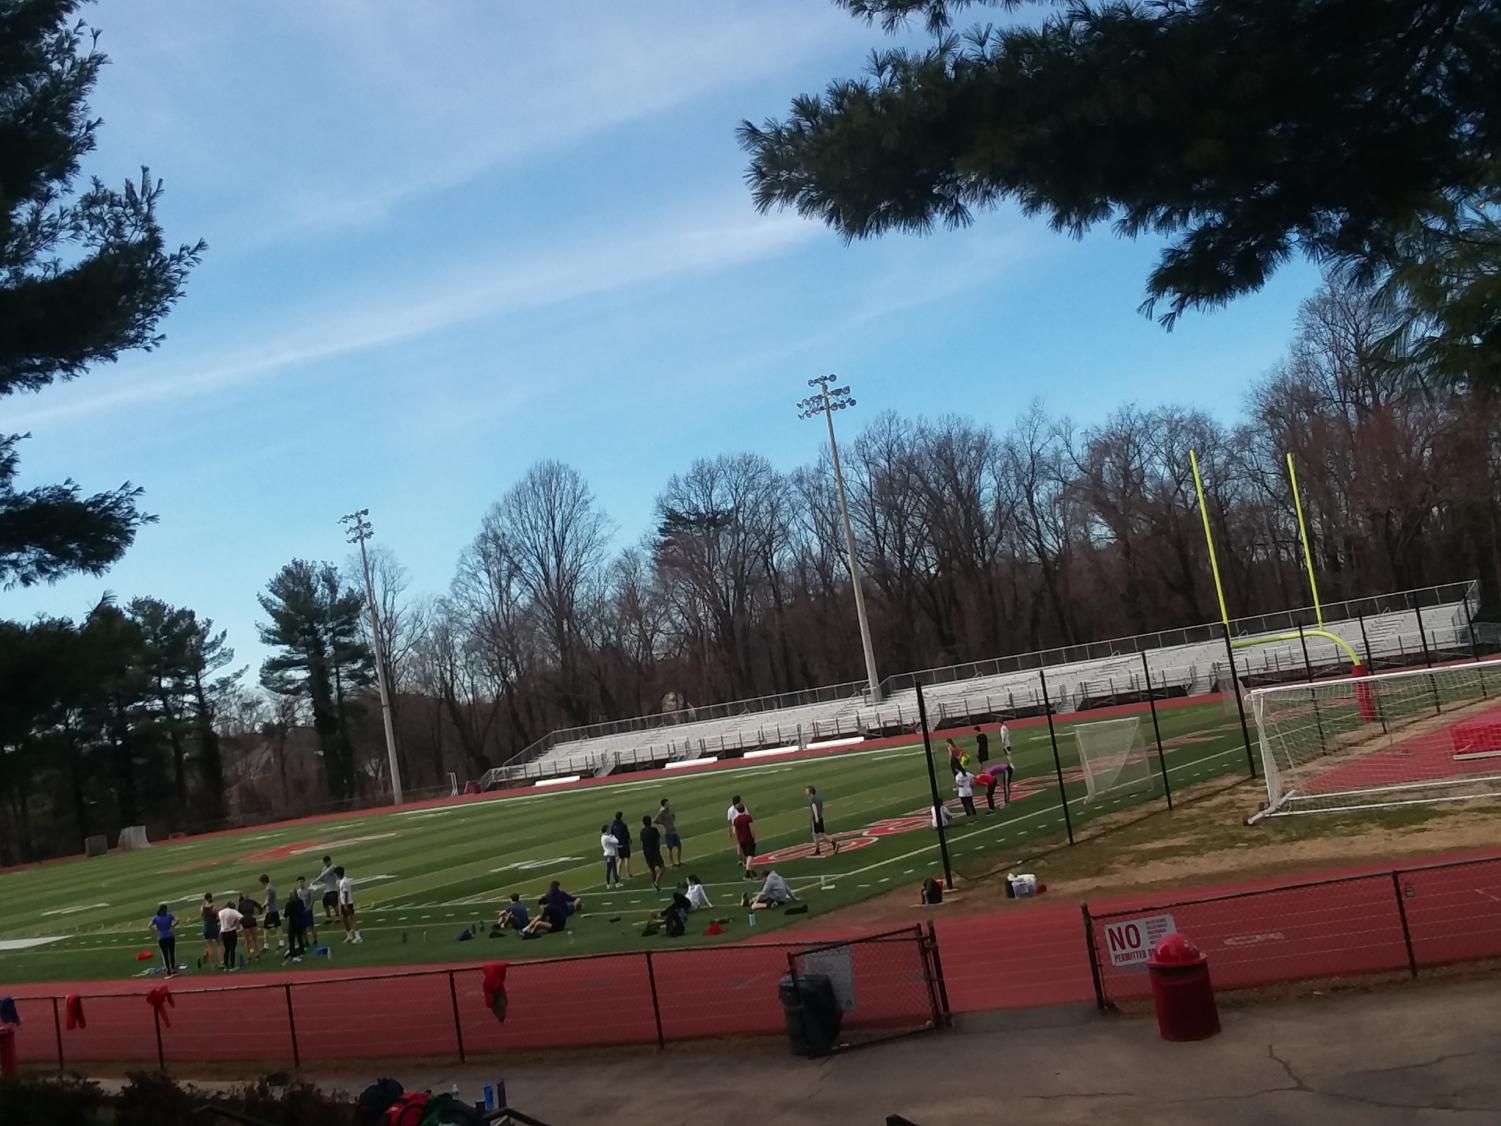 The McLean track team practices on a beautiful Monday evening in the stadium.